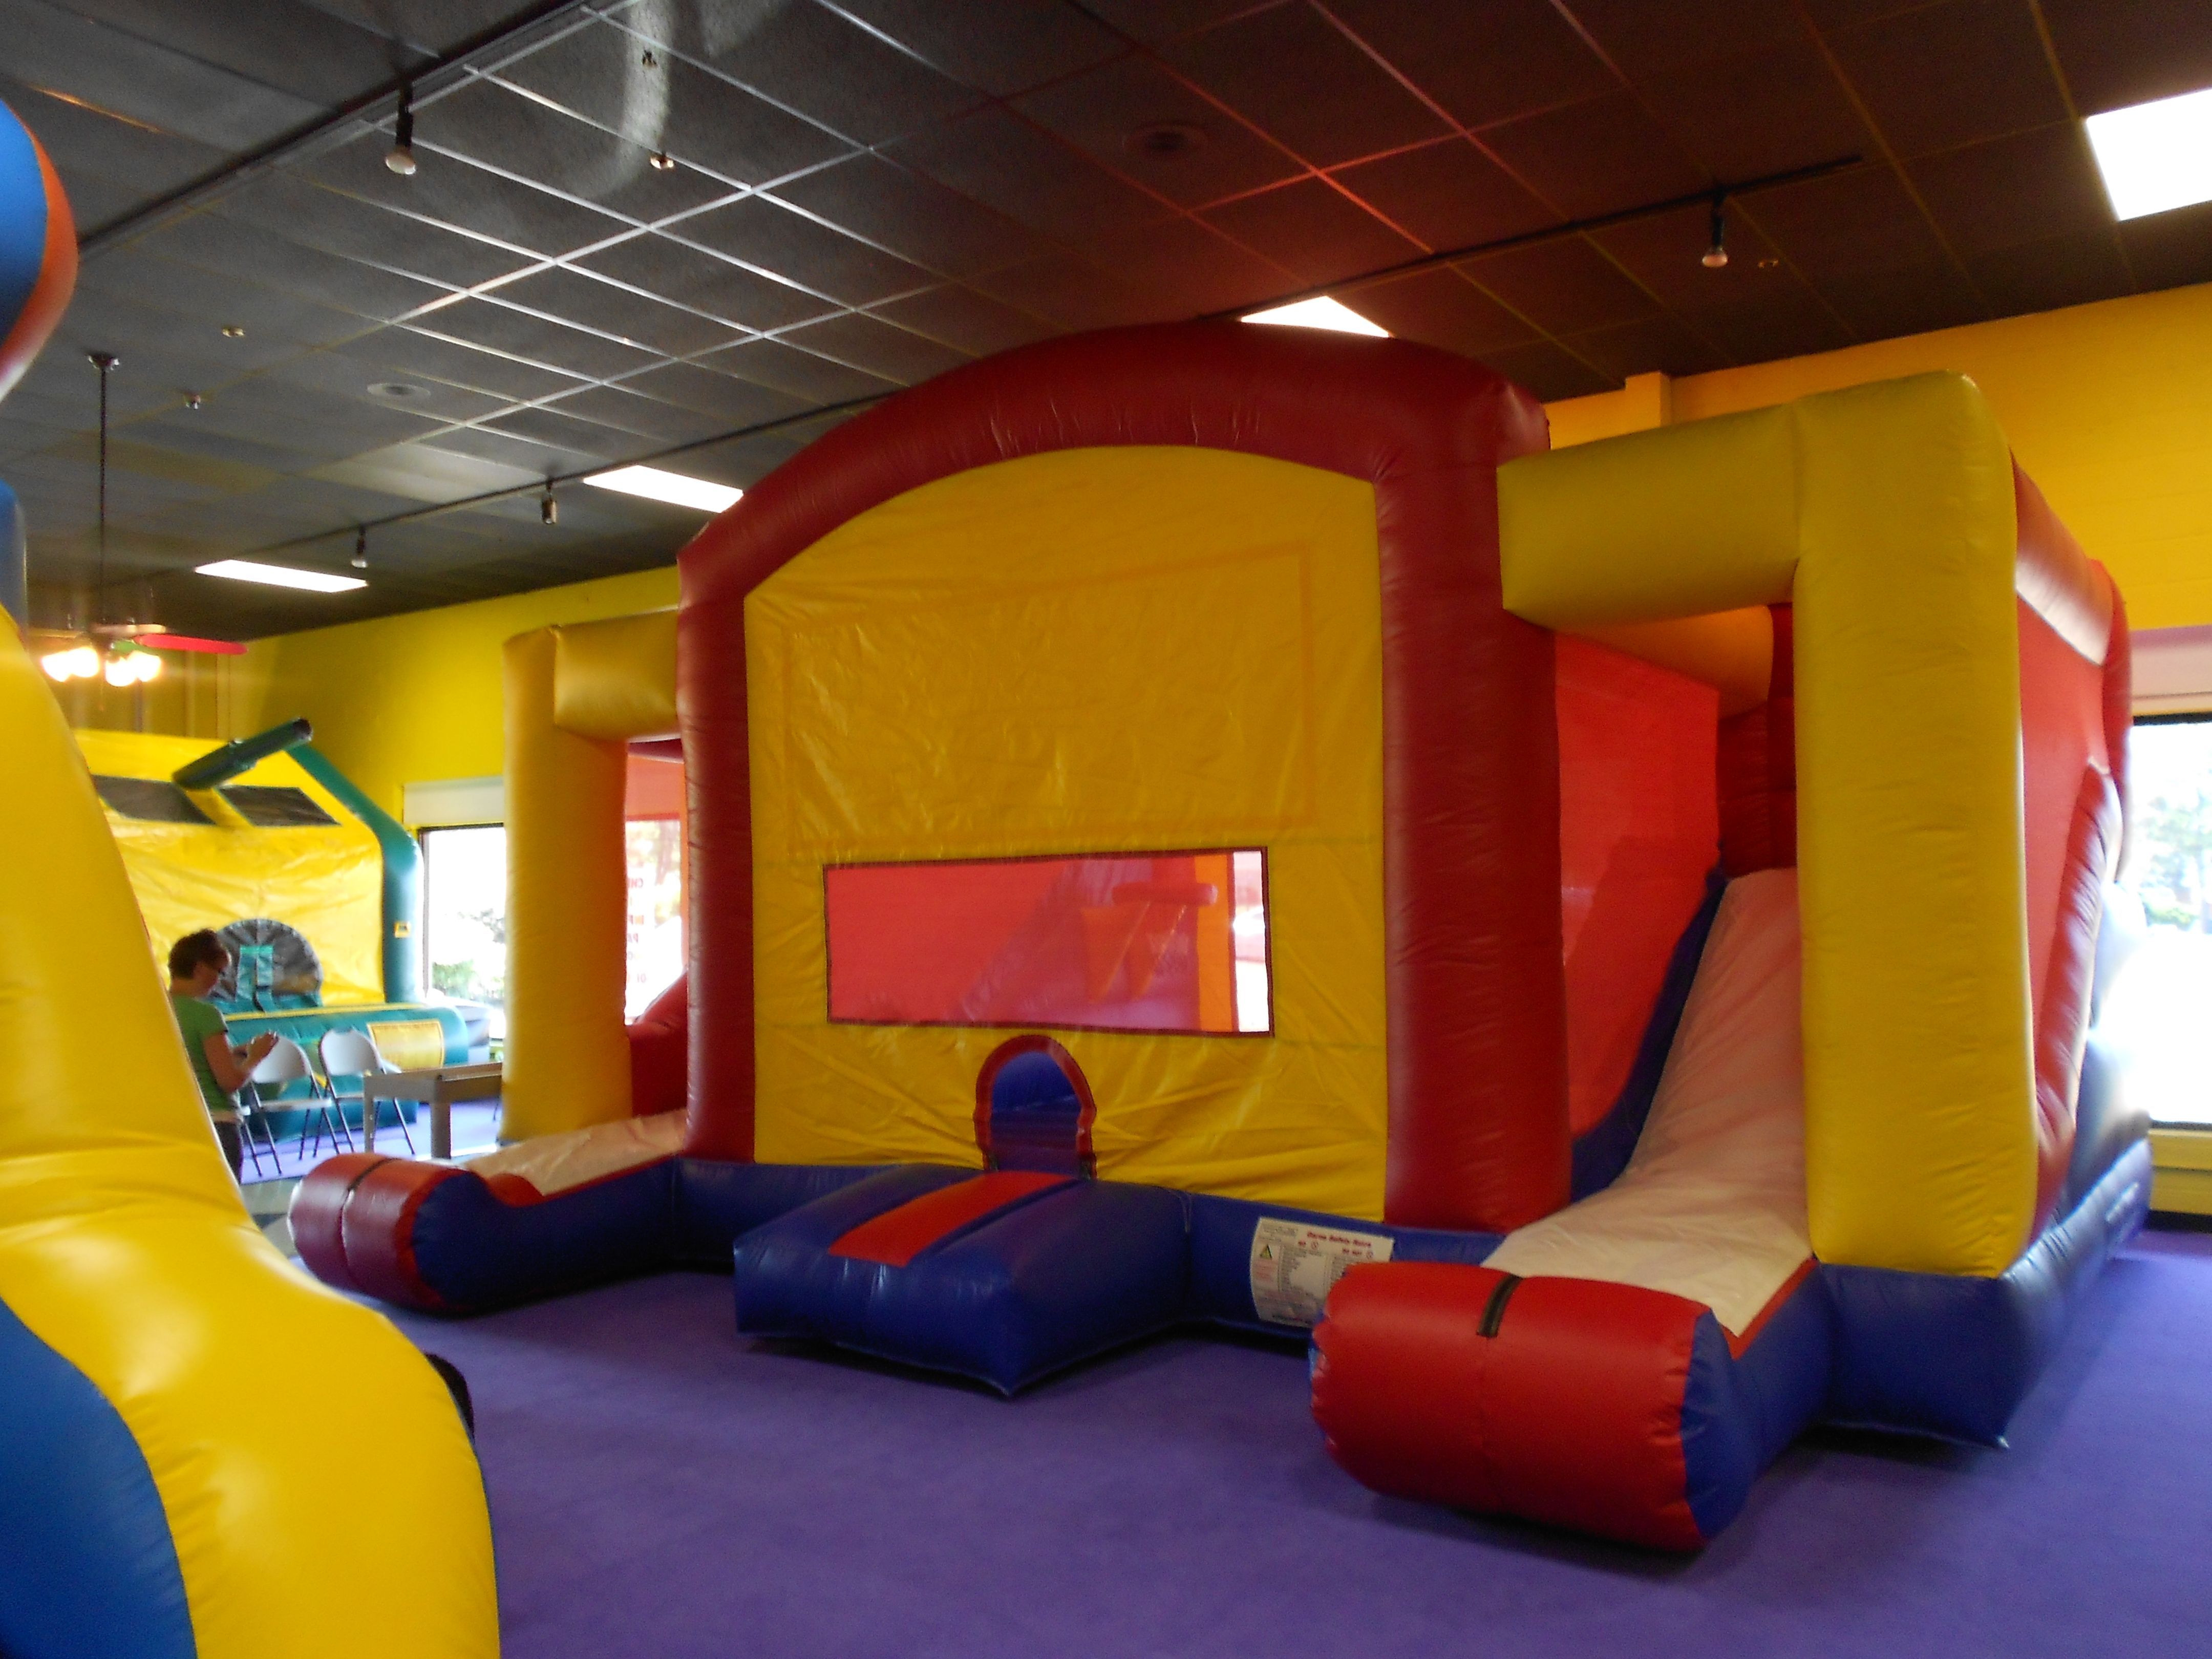 The Bounce Place Ridgeland Ms Toddler Playground Playground Equipment Playground